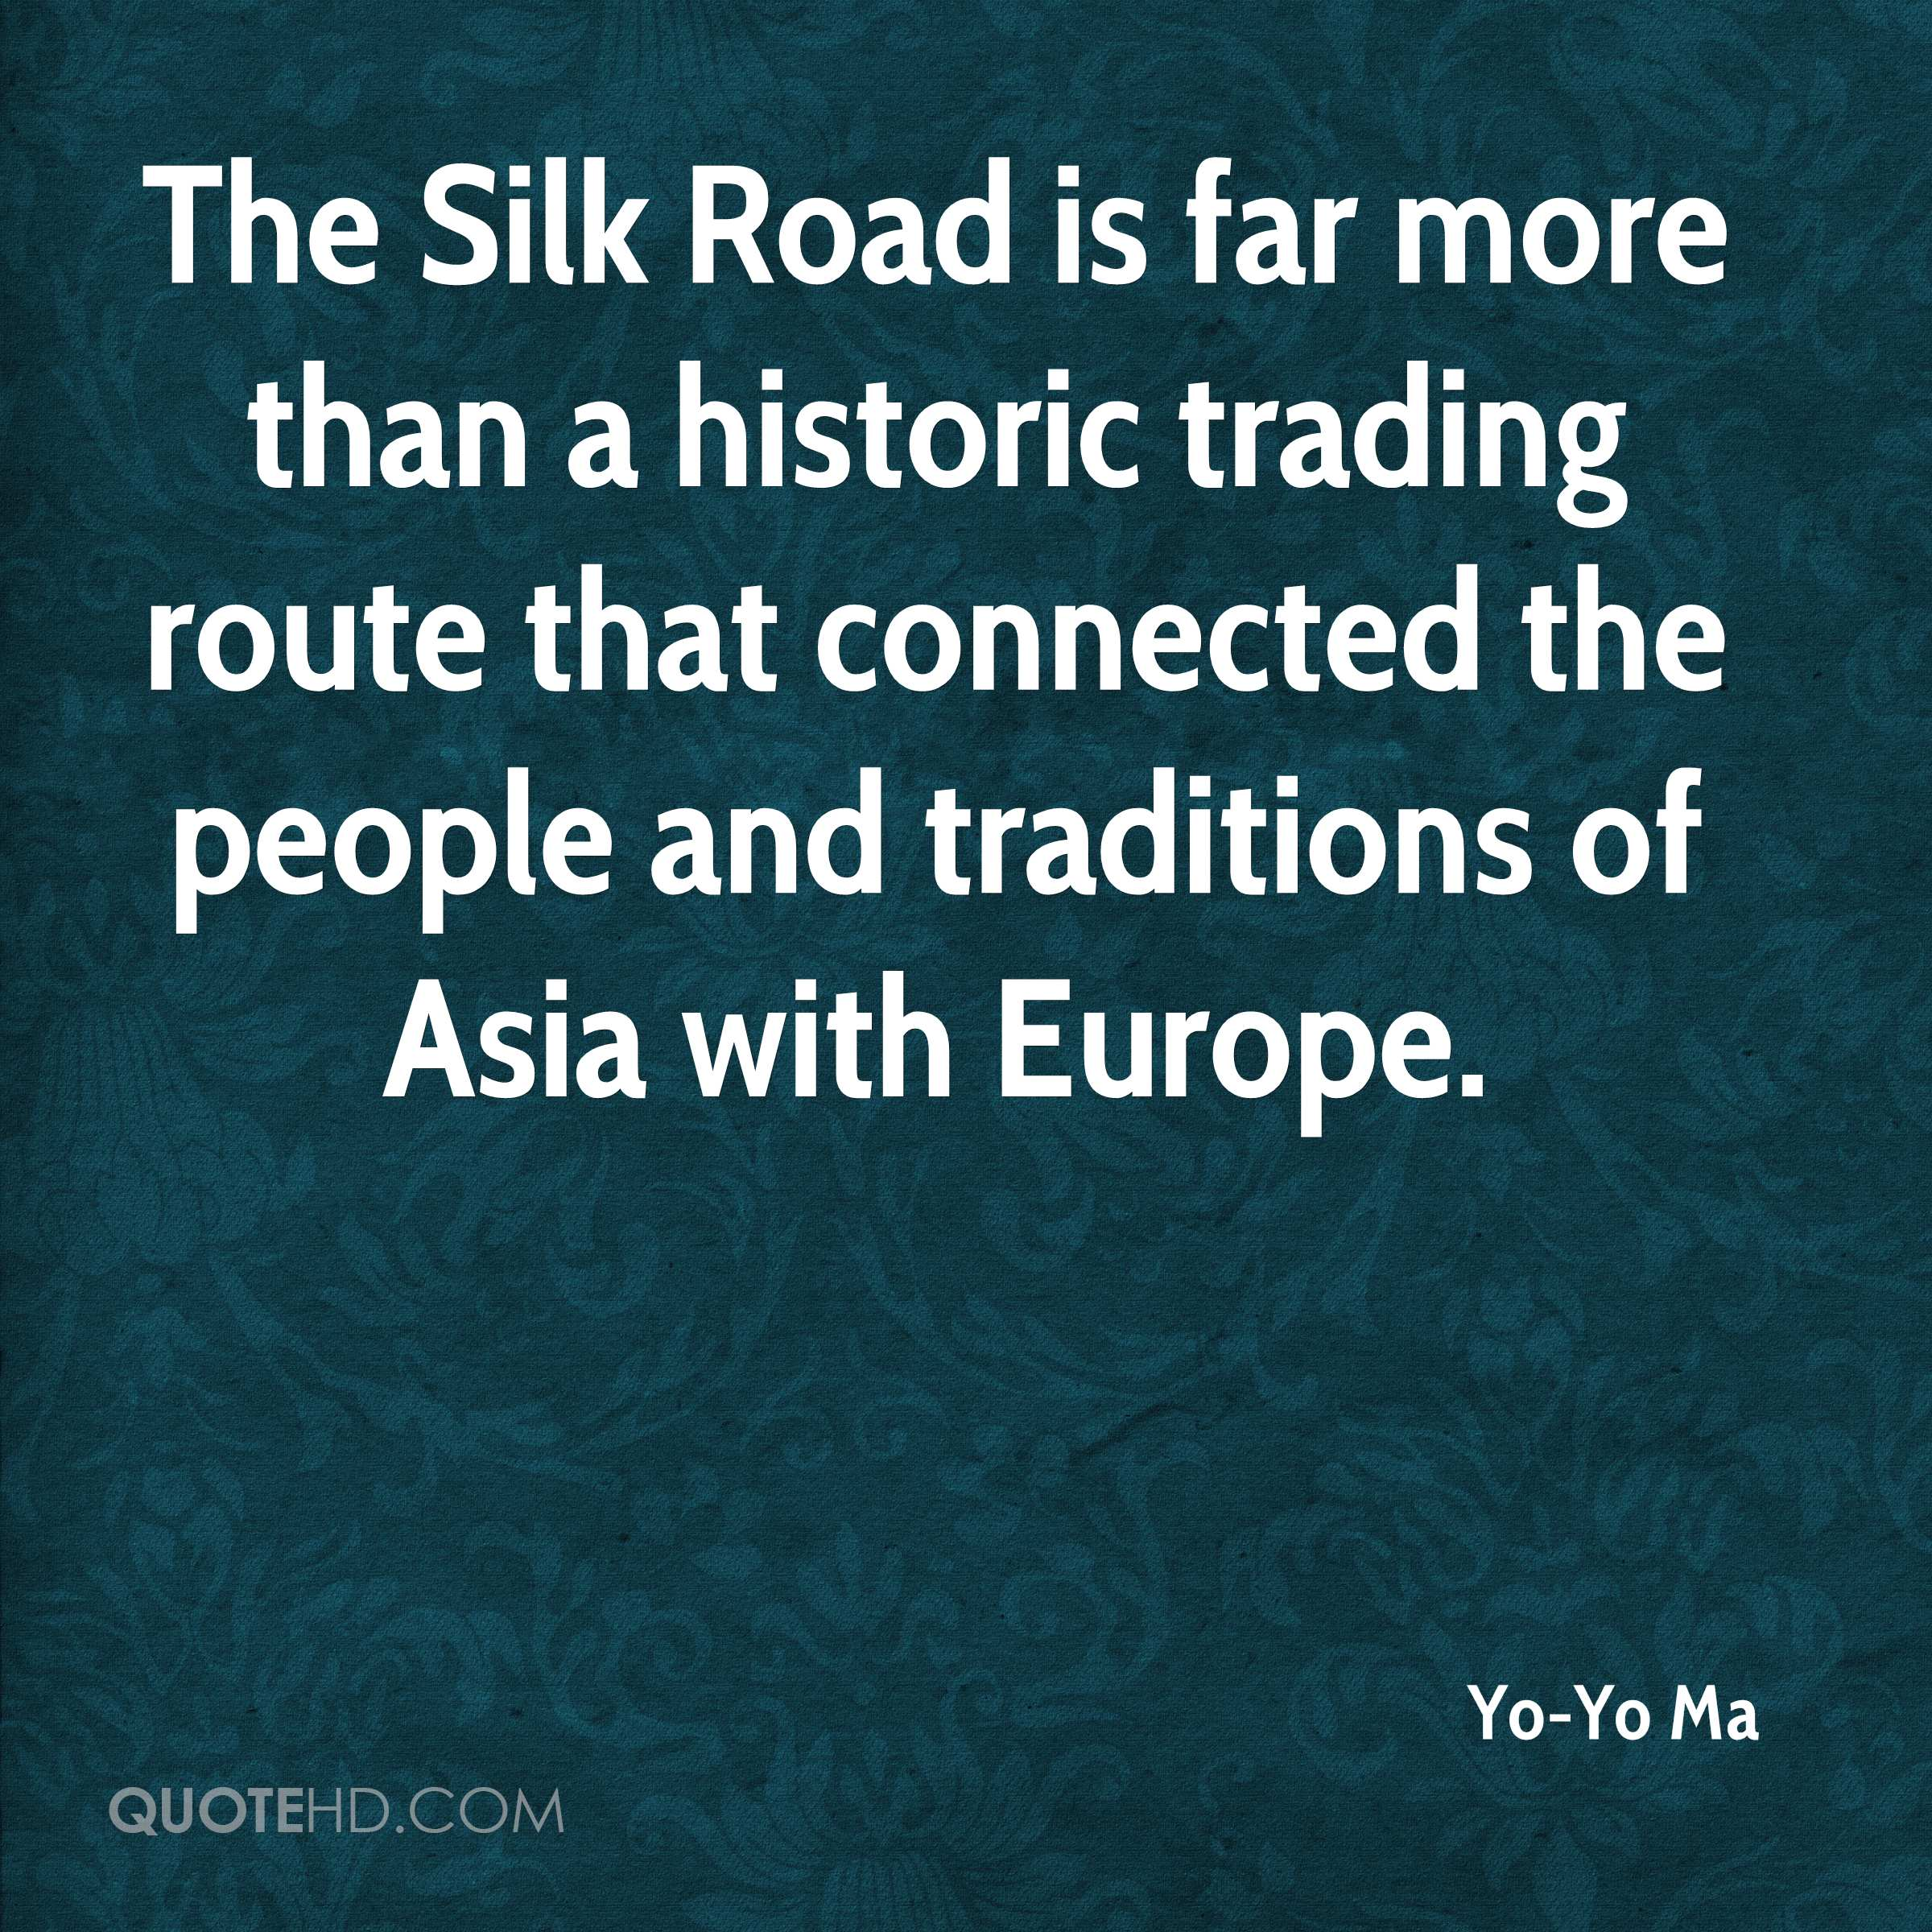 The Silk Road is far more than a historic trading route that connected the people and traditions of Asia with Europe.